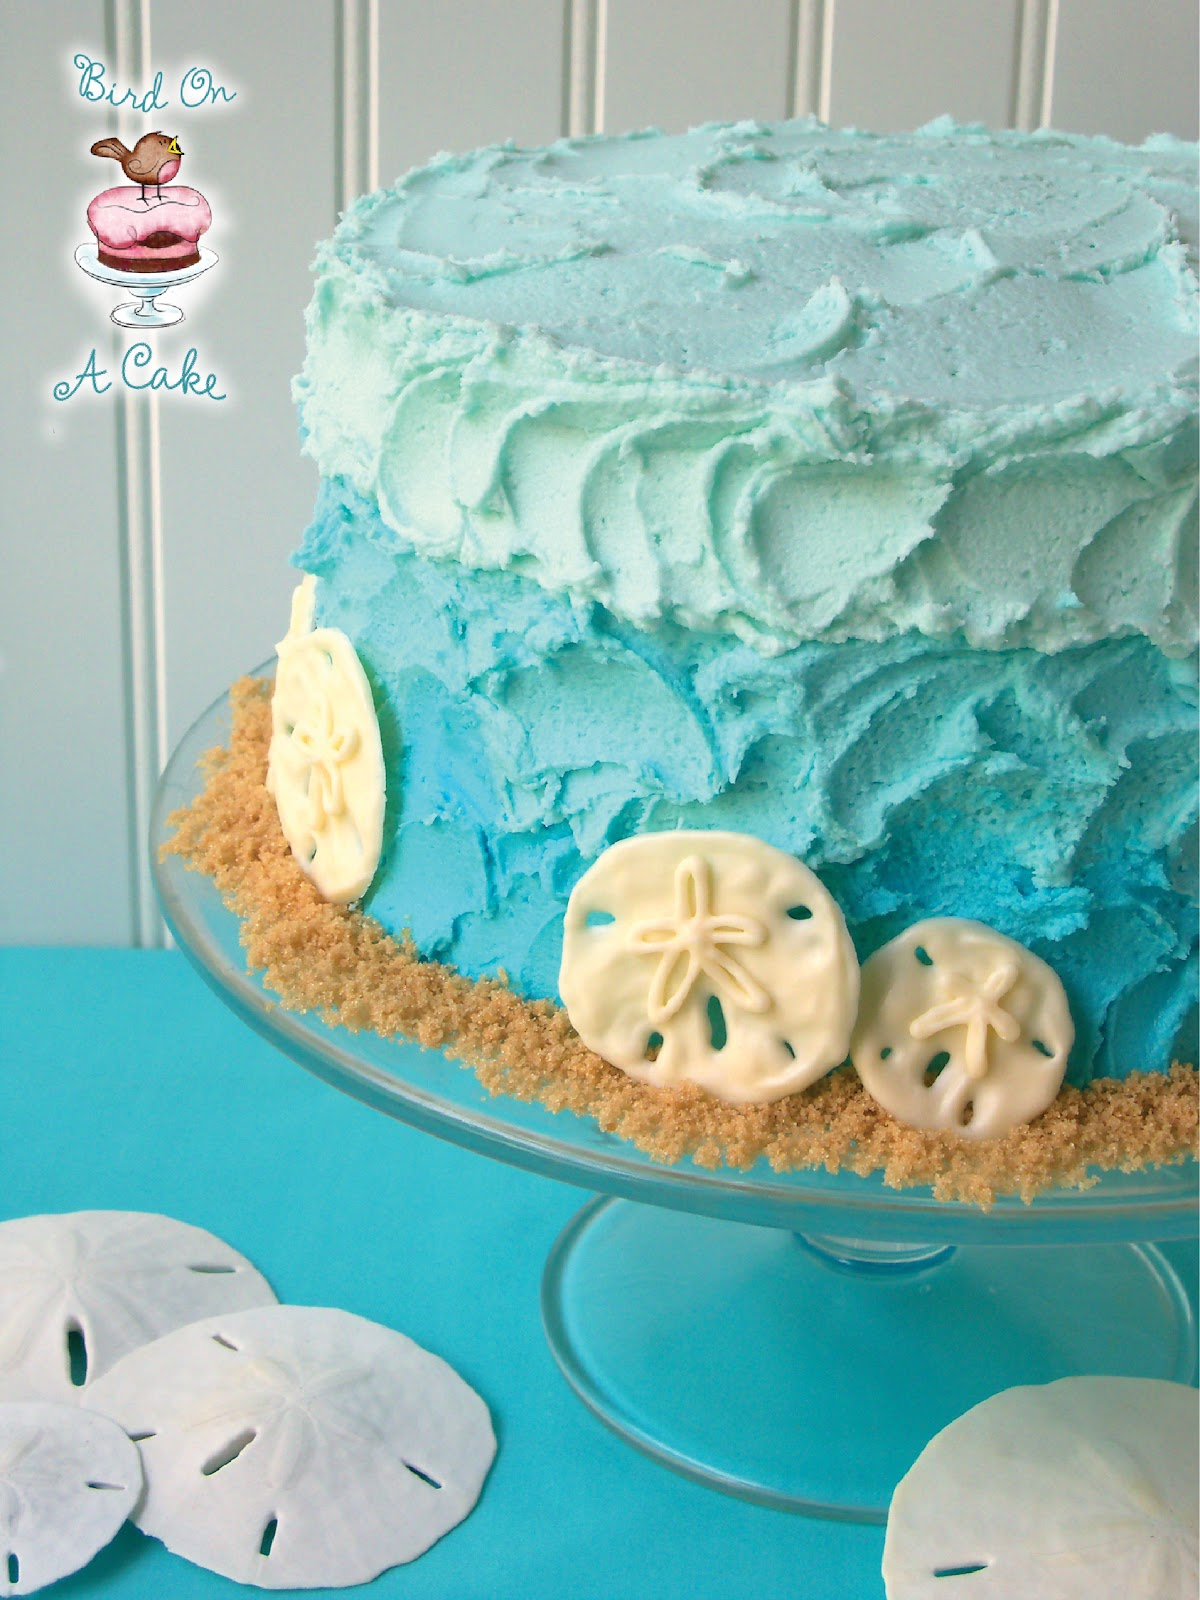 http://birdonacake.blogspot.com/2012/07/ombre-beach-cake-with-chocolate-sand.html